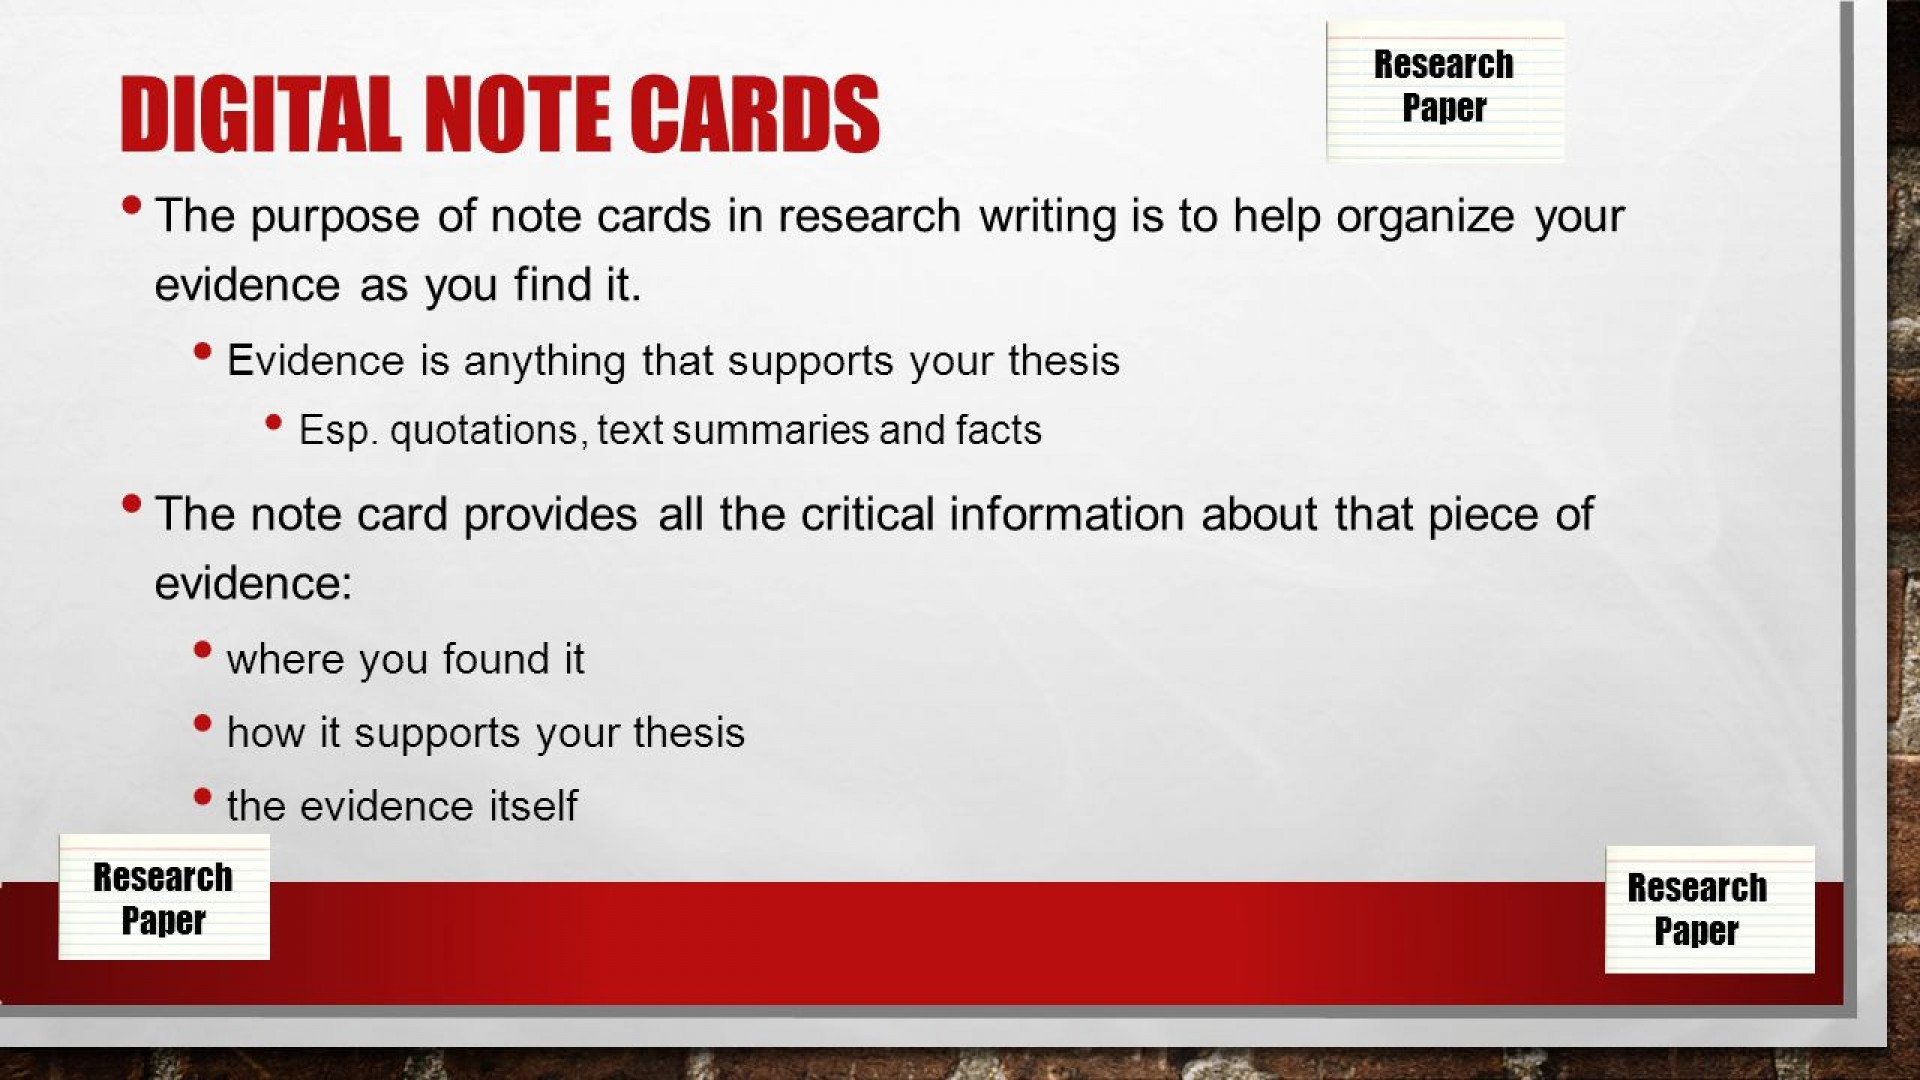 001 Slide 2 Example Of Notecards For Research Fascinating Paper How To Write A Mla Writing 1920